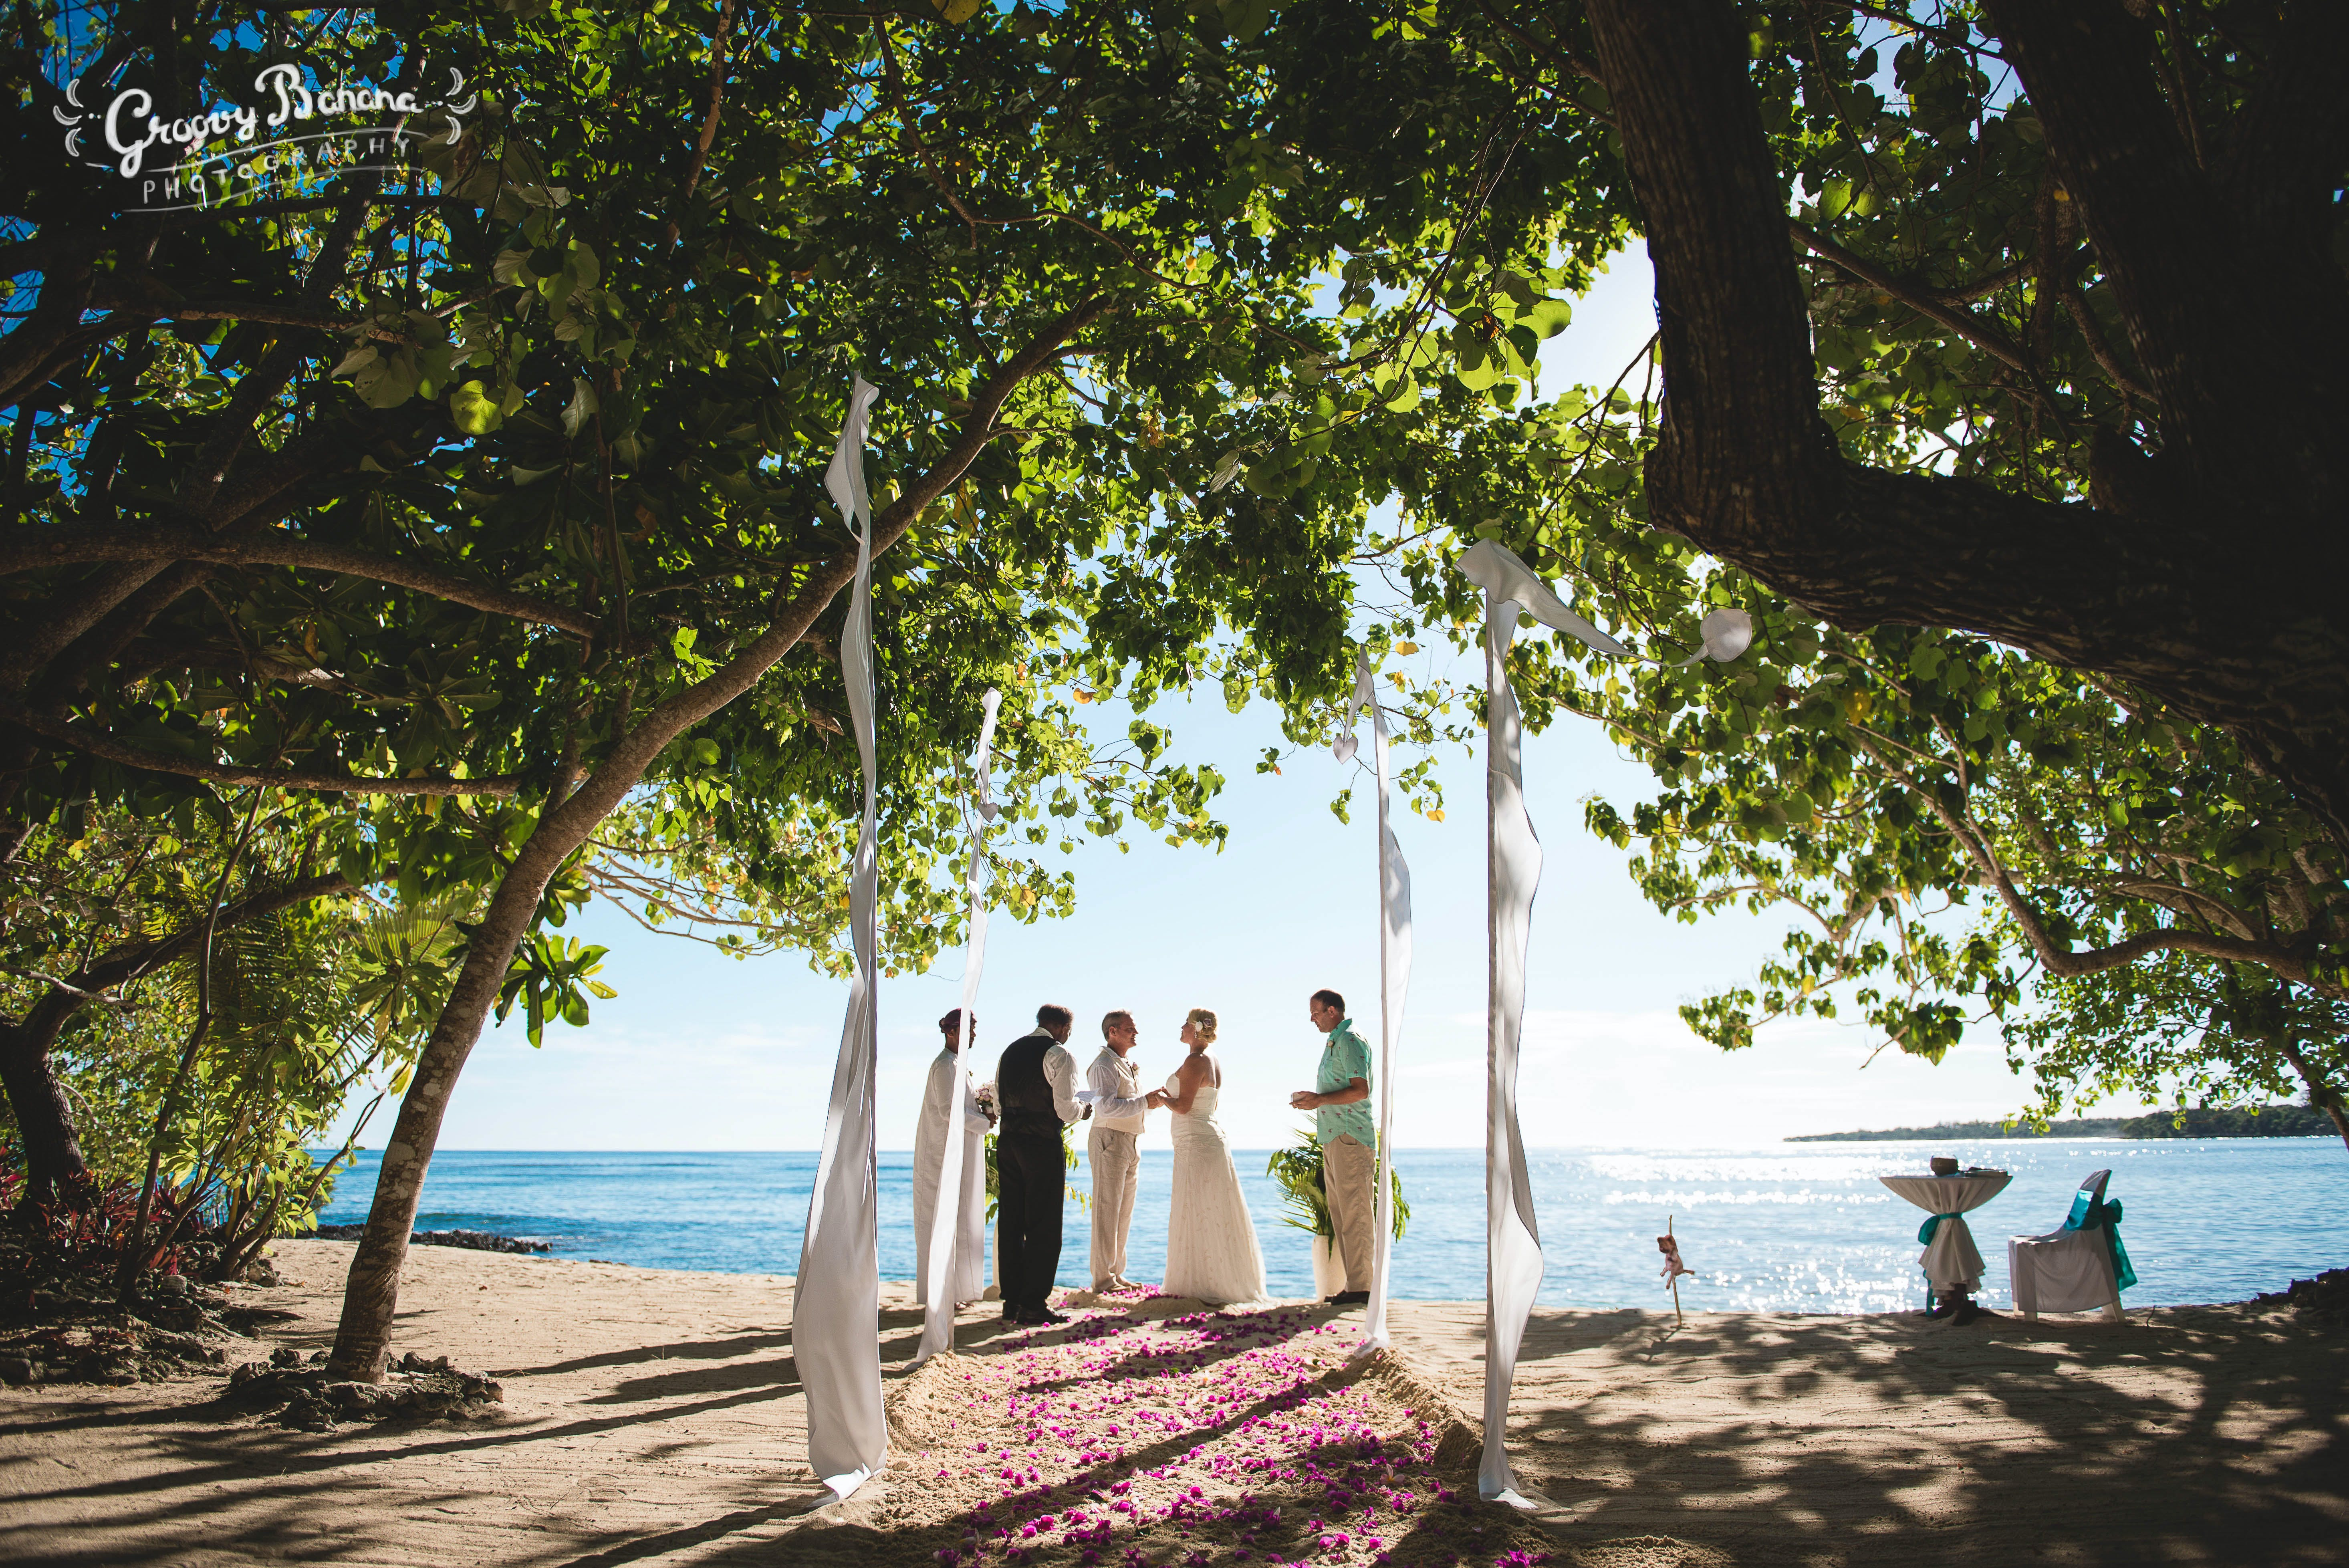 Sunset Beach, scattered floral aisle and Bali Flags